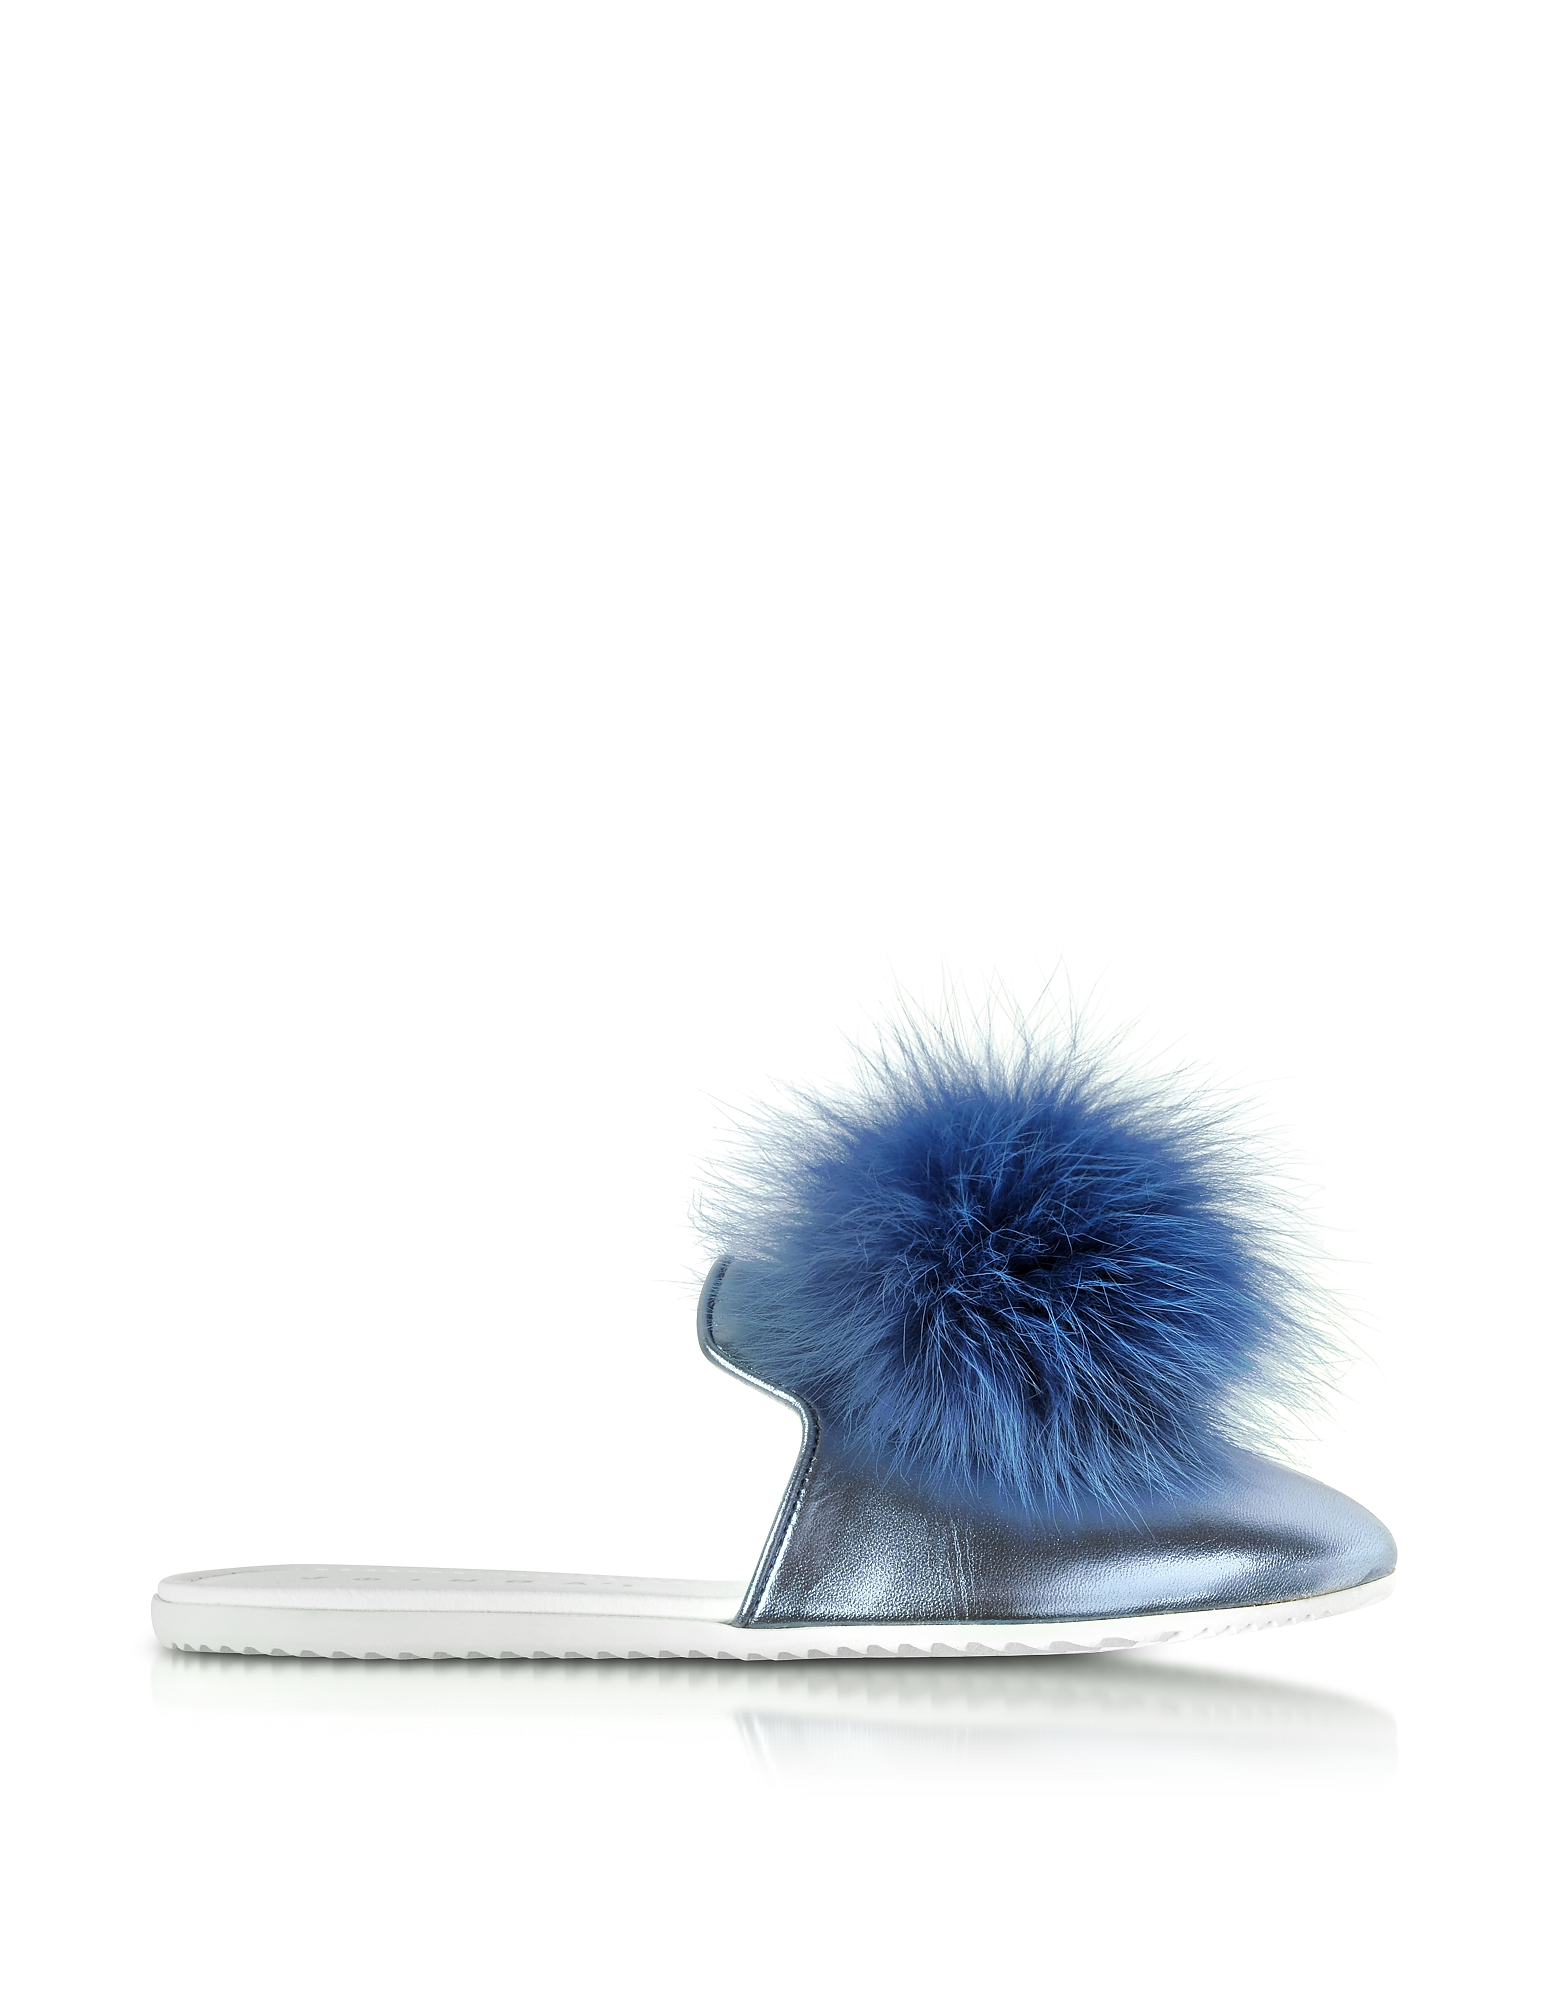 Joshua Sanders Shoes, Blue Laminated Leather Pom Pom Mule